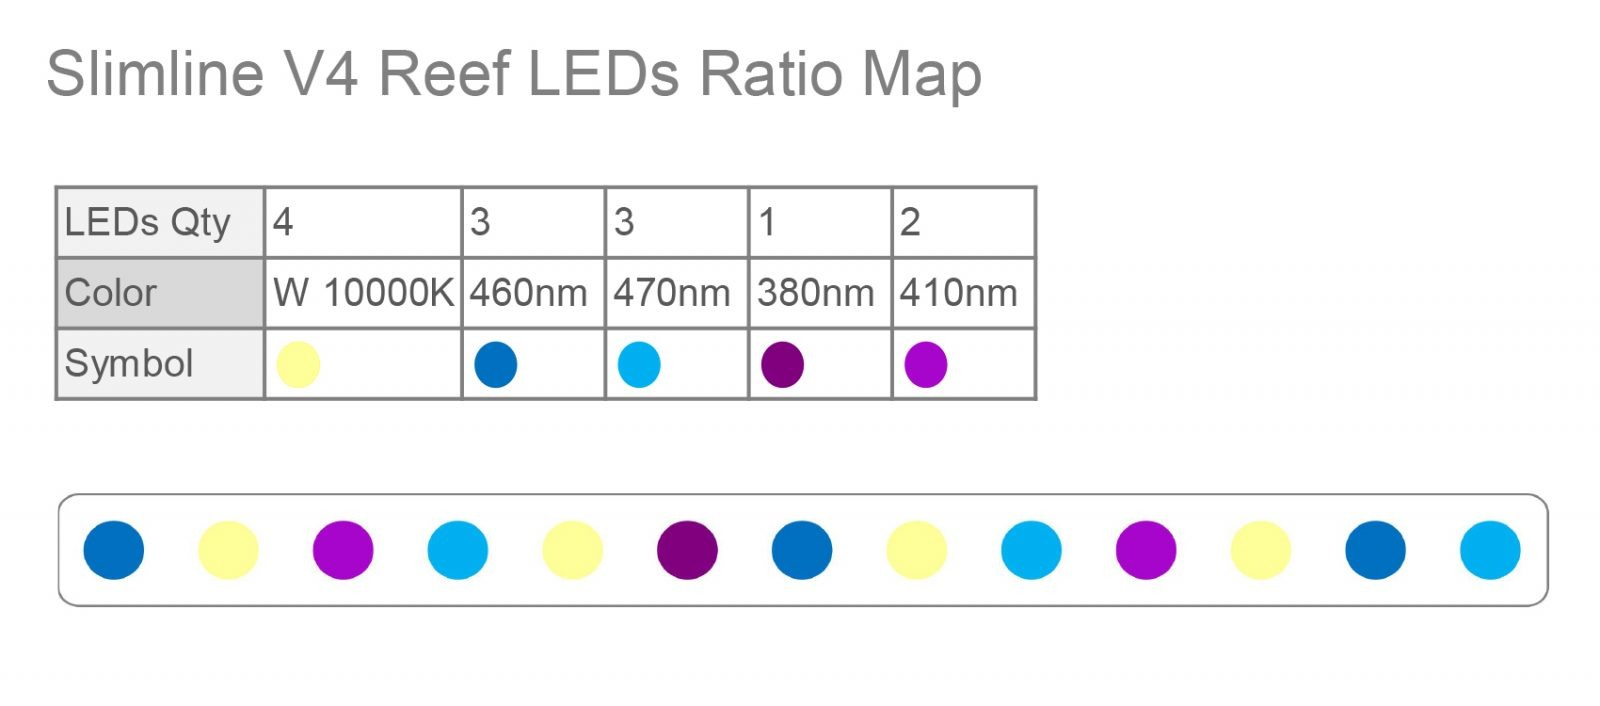 Slimline V4 LED récif ratio map 20170620 update (1)